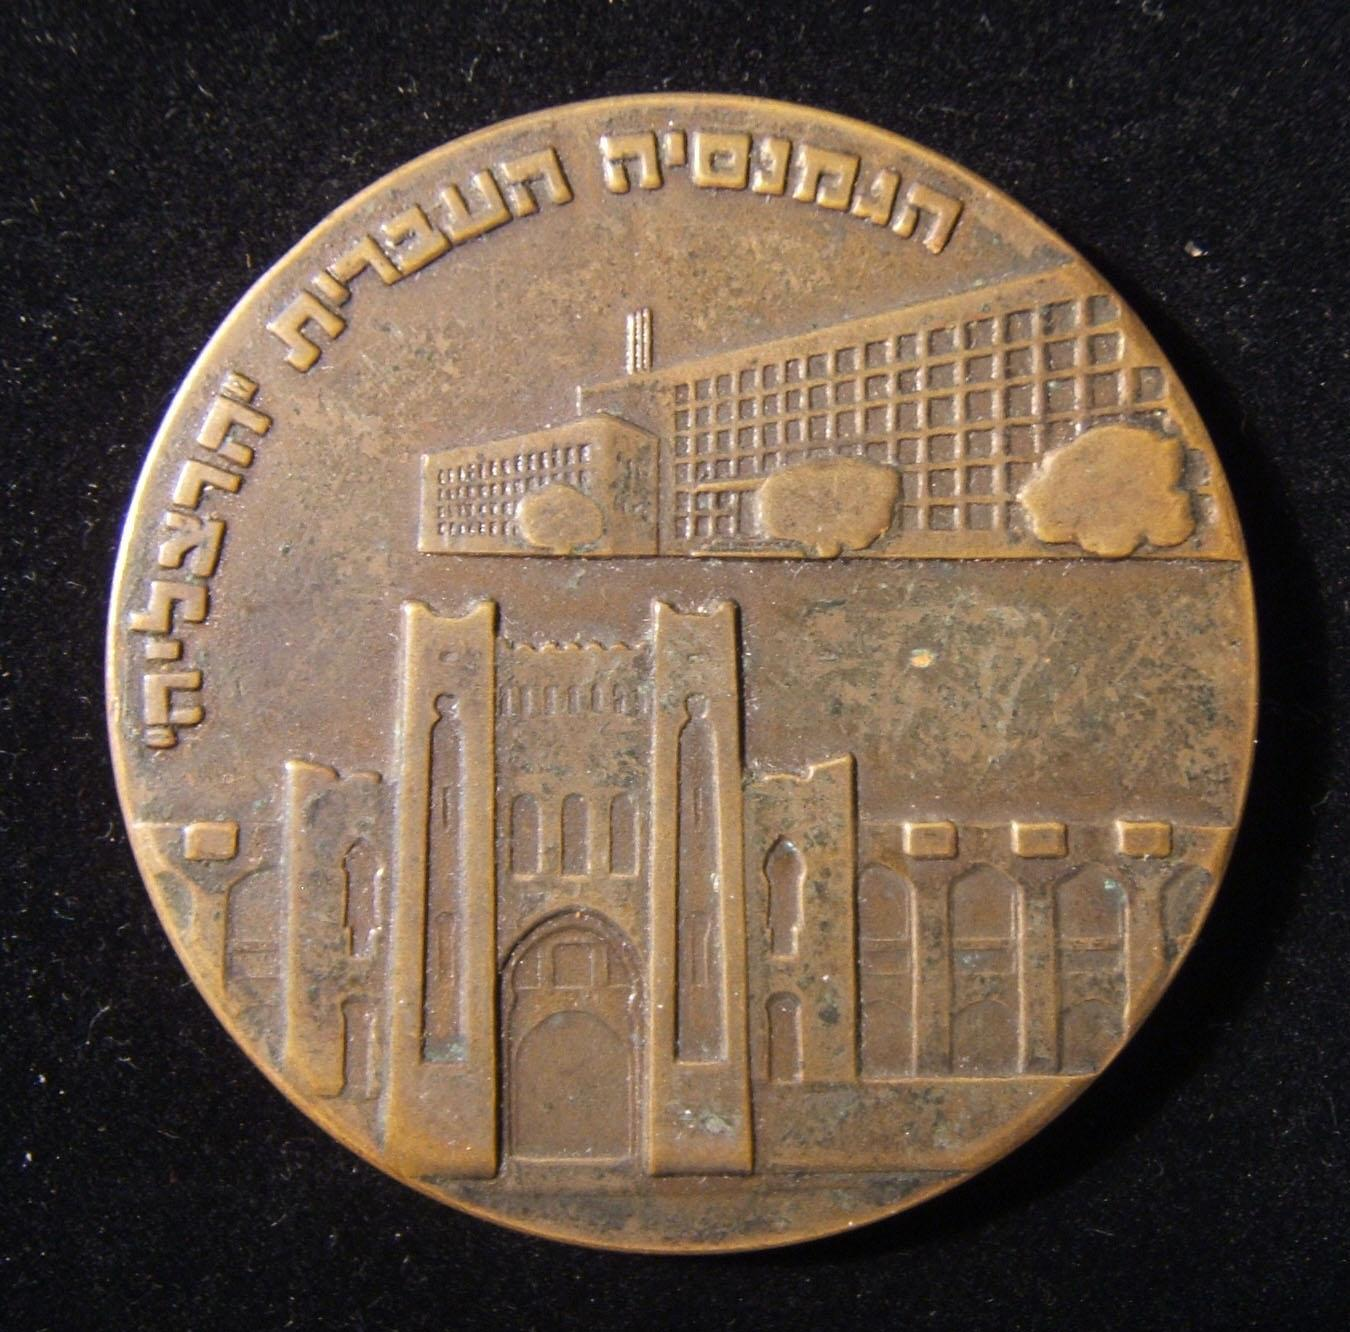 Israel: 'Gymnasia Herzliya' medal, ND (1969?); not maker-marked (Kretchmer?); size: 60mm; weight: 96.15g. Obv.: original and new structures of the Gymnasium (High School); legend: